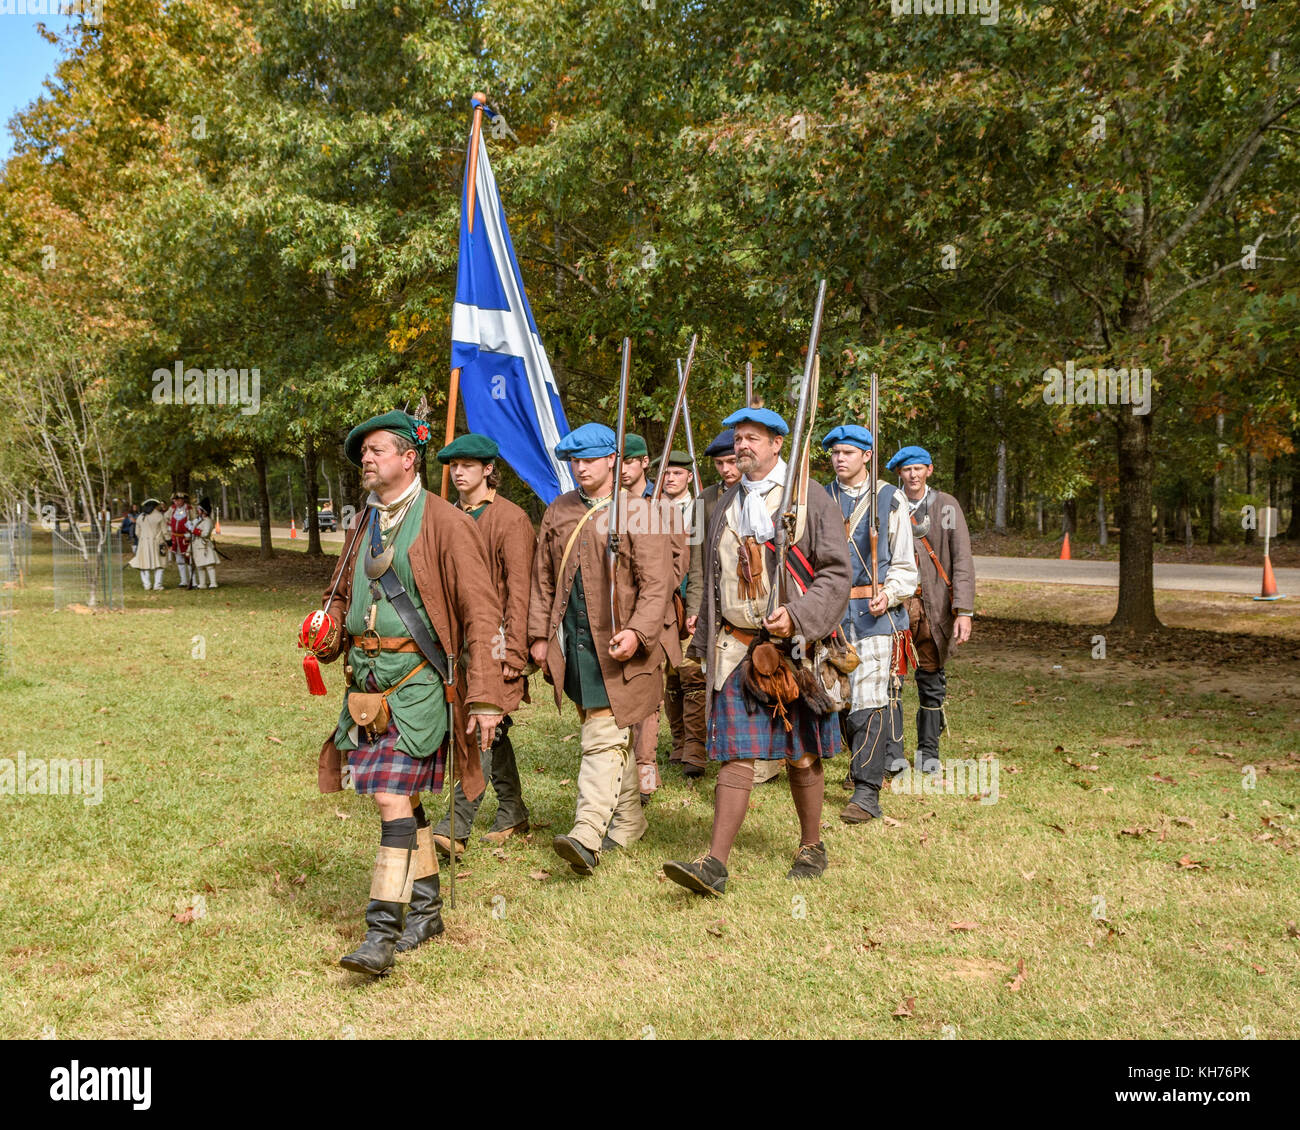 Reenactment actors dressed as Scottish army soldiers of the early 1700's marching with the flag of Scotland. - Stock Image